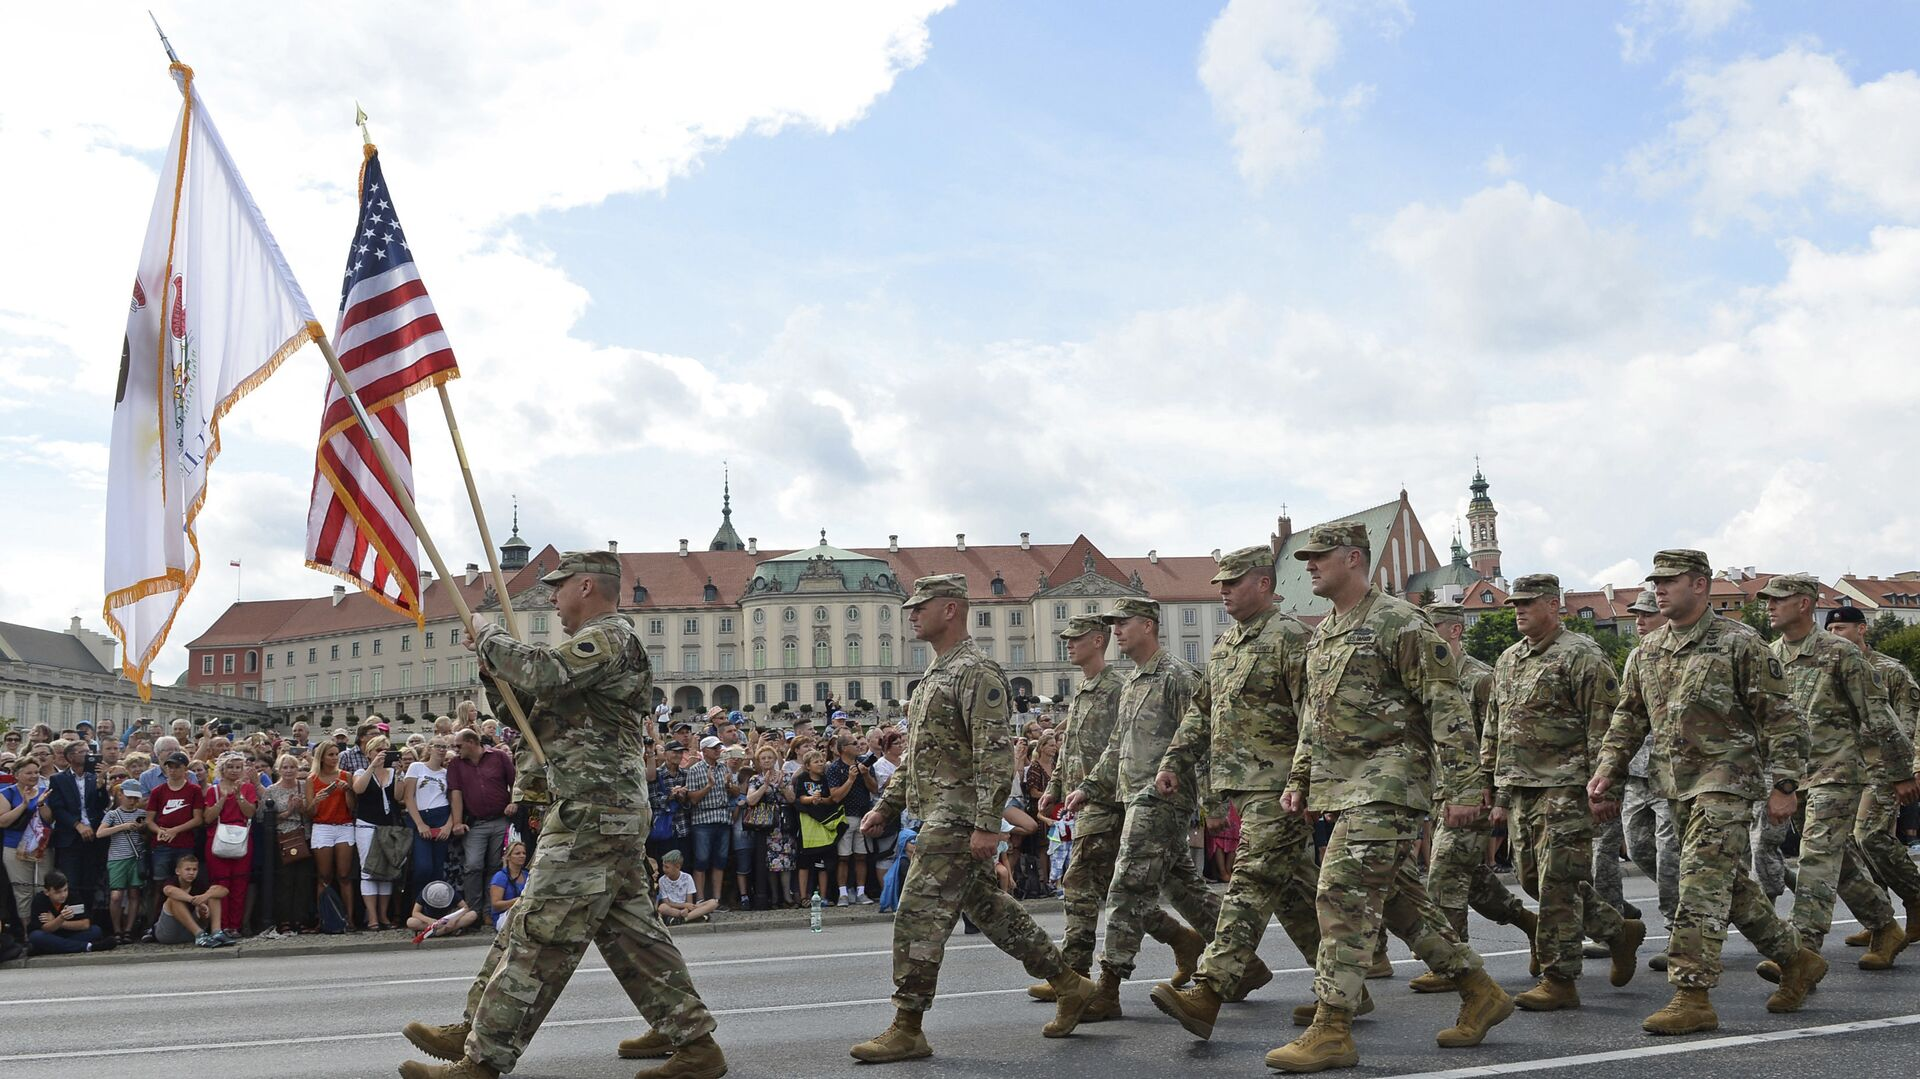 US Army soldiers take part in an annual military parade celebrating Polish Army Day in Warsaw, Poland - Sputnik Italia, 1920, 30.05.2021